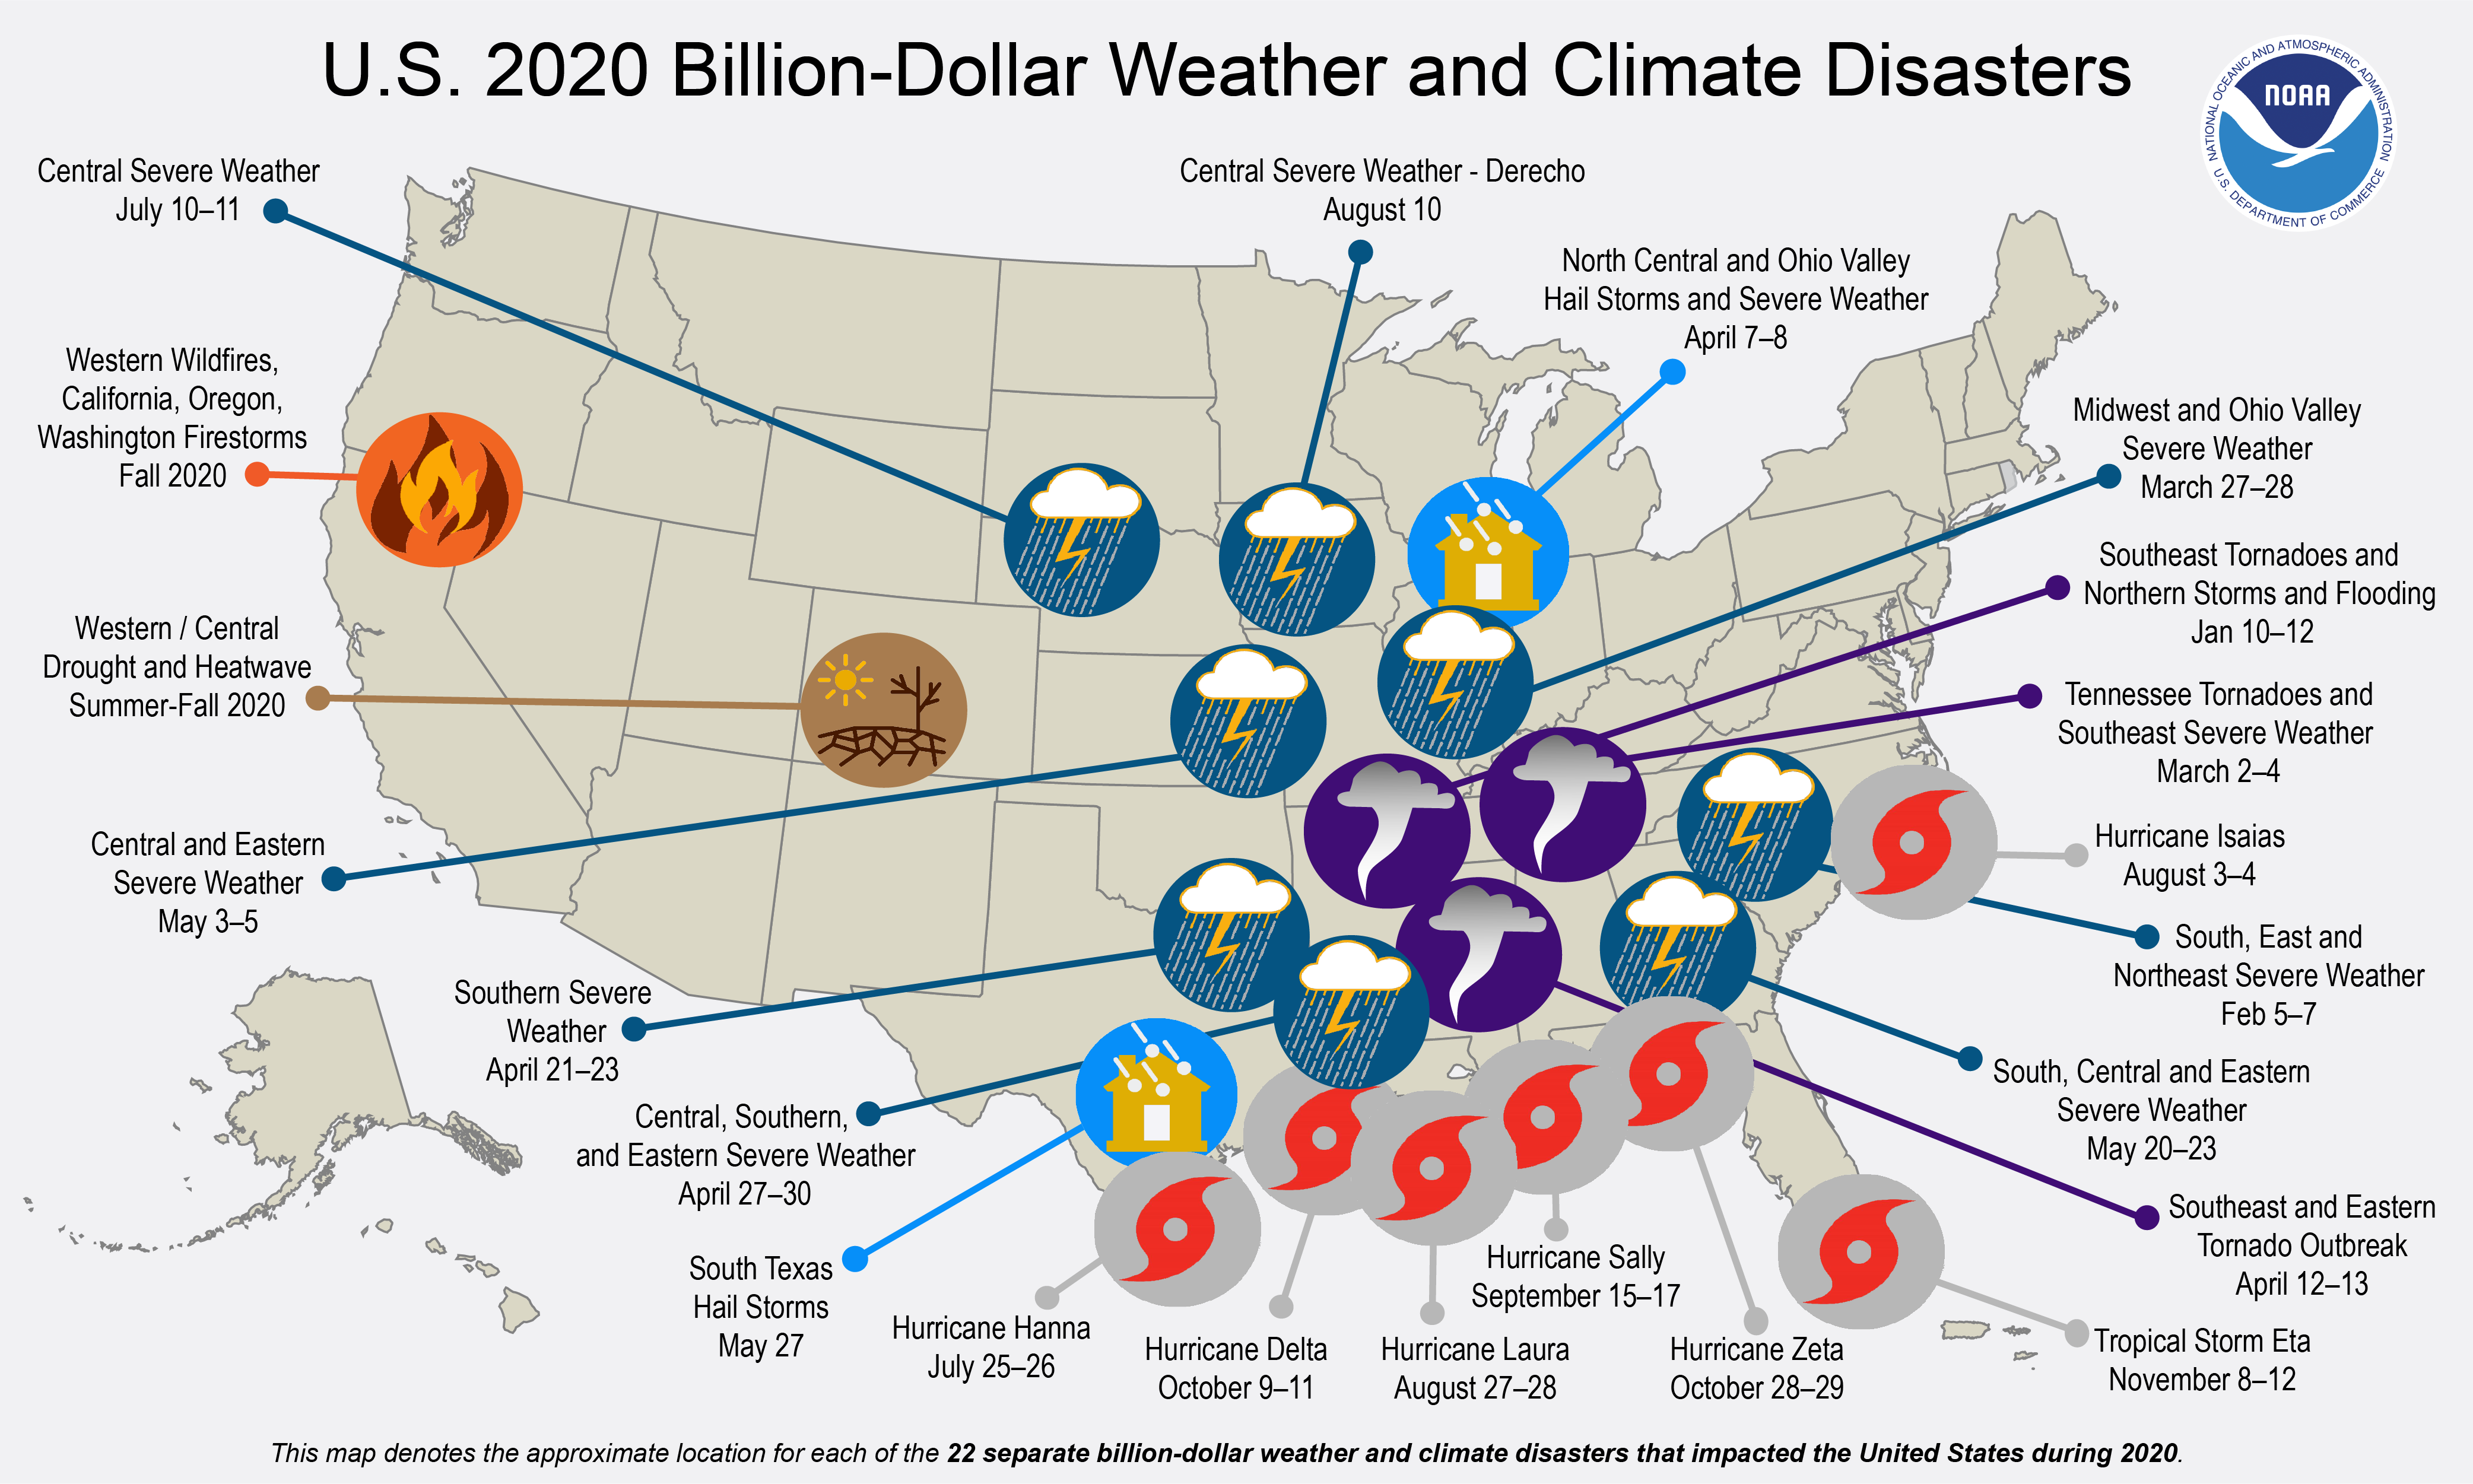 2020 Billion Dollar Disasters: A Top NOAA Expert Weighs In